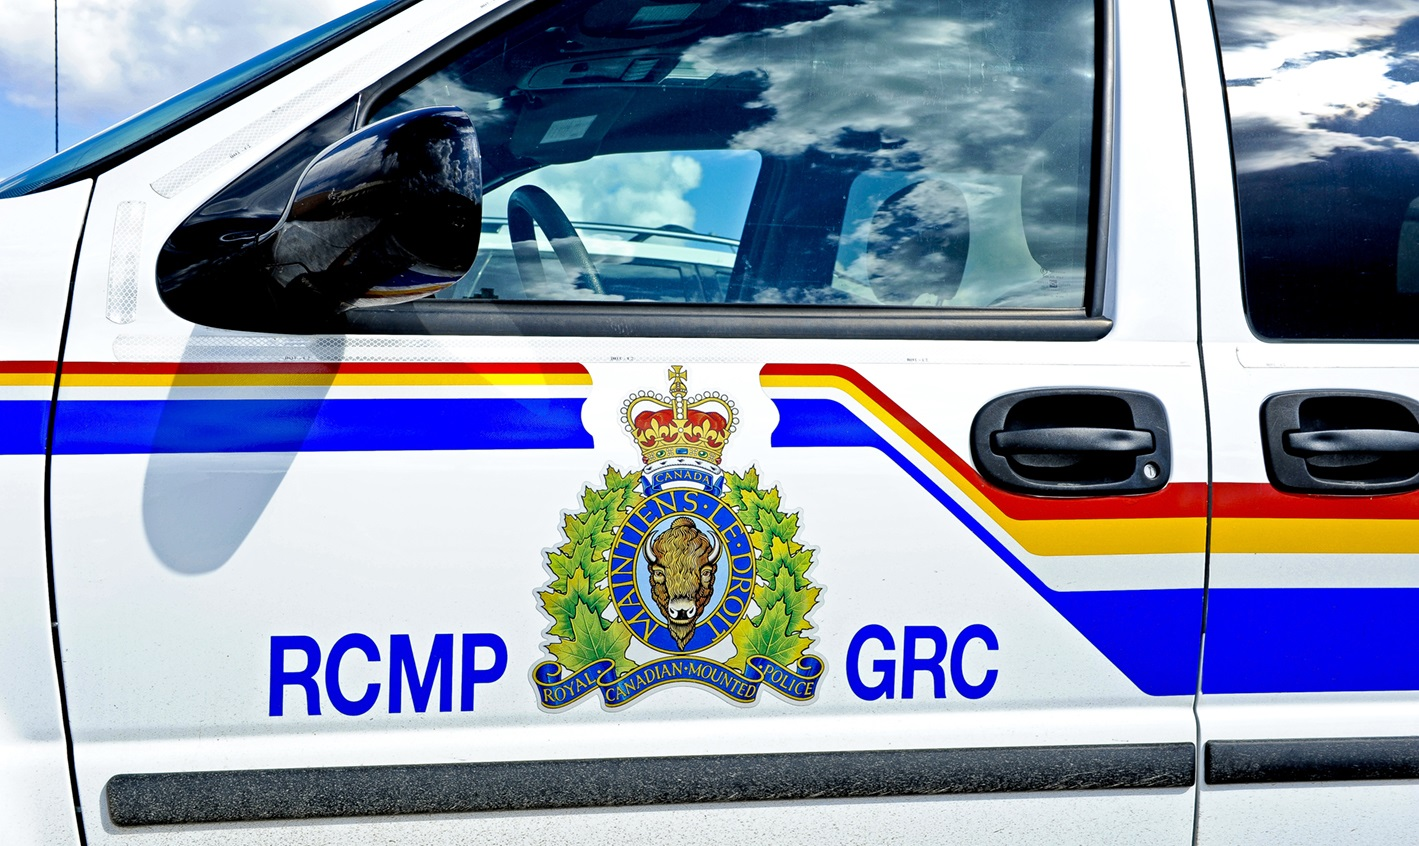 Identities of two killed in crash north of Campbell River confirmed